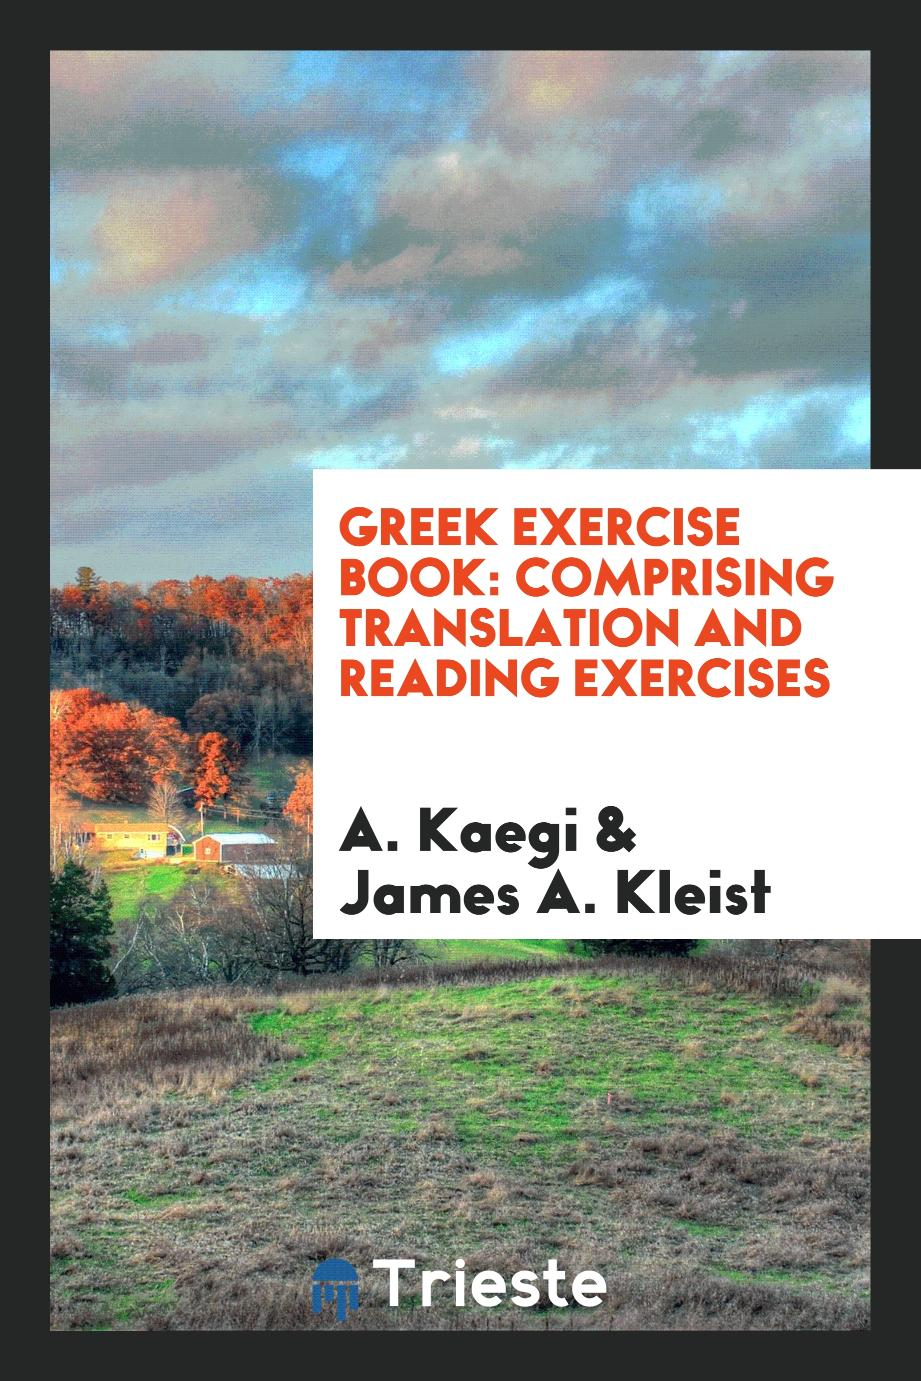 Greek Exercise Book: Comprising Translation and Reading Exercises